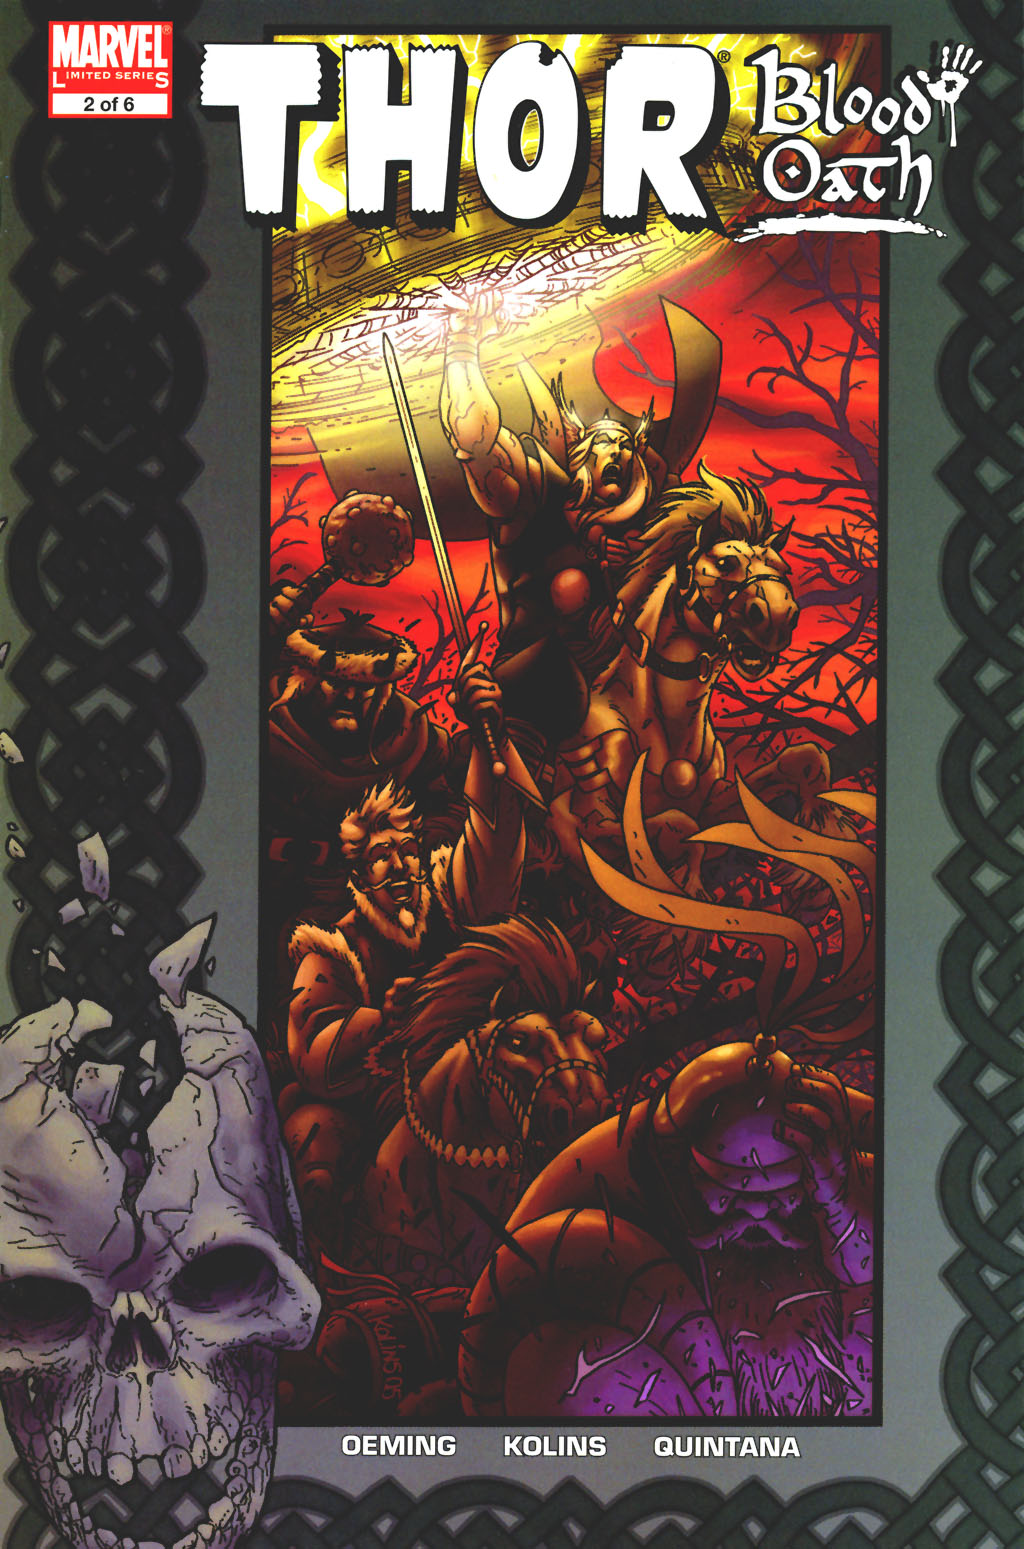 Read online Thor: Blood Oath comic -  Issue #2 - 1